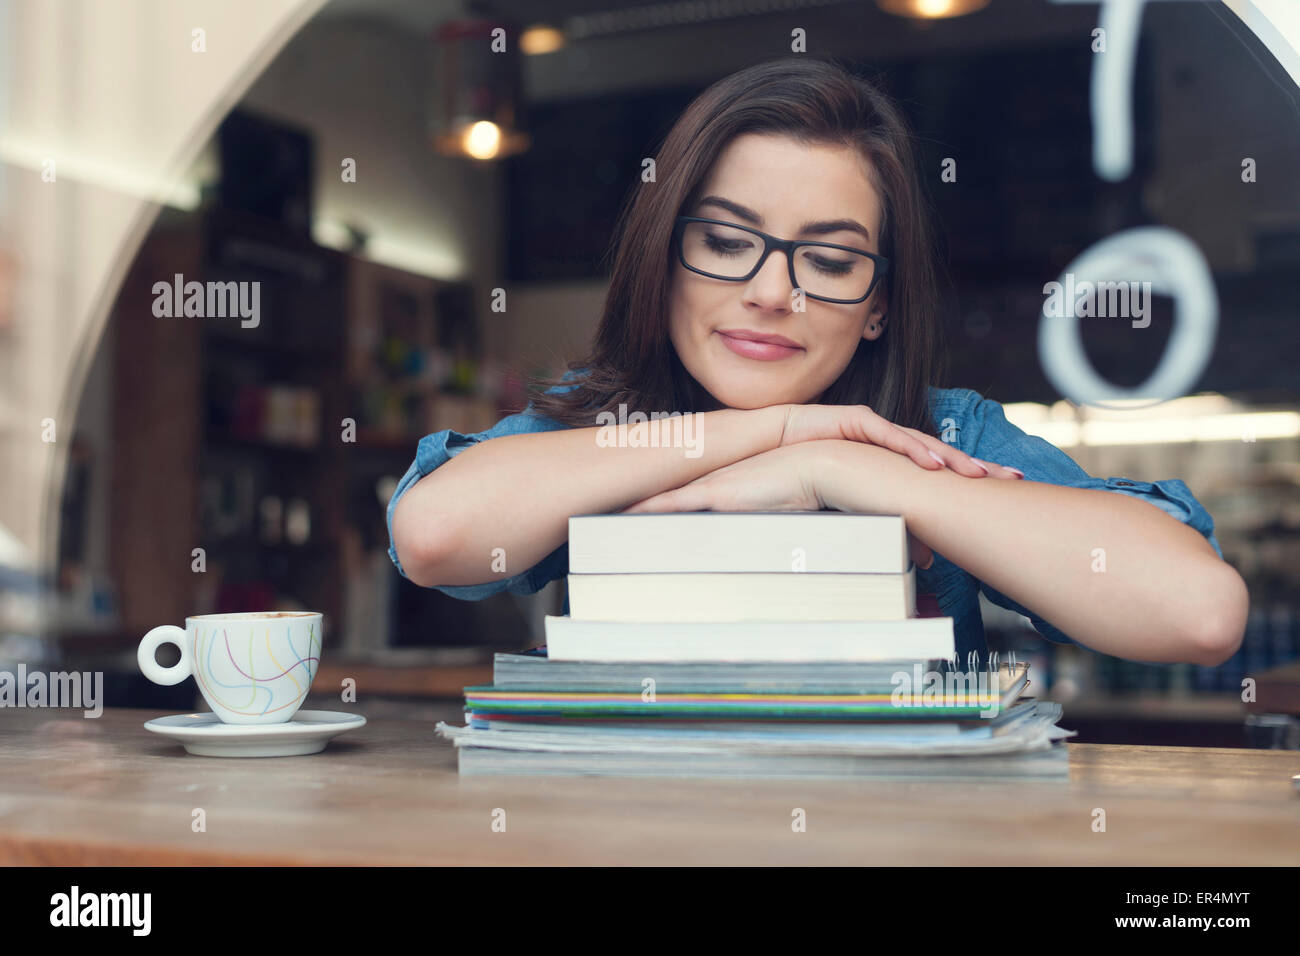 Belle et smiling female student at cafe. Cracovie, Pologne Photo Stock